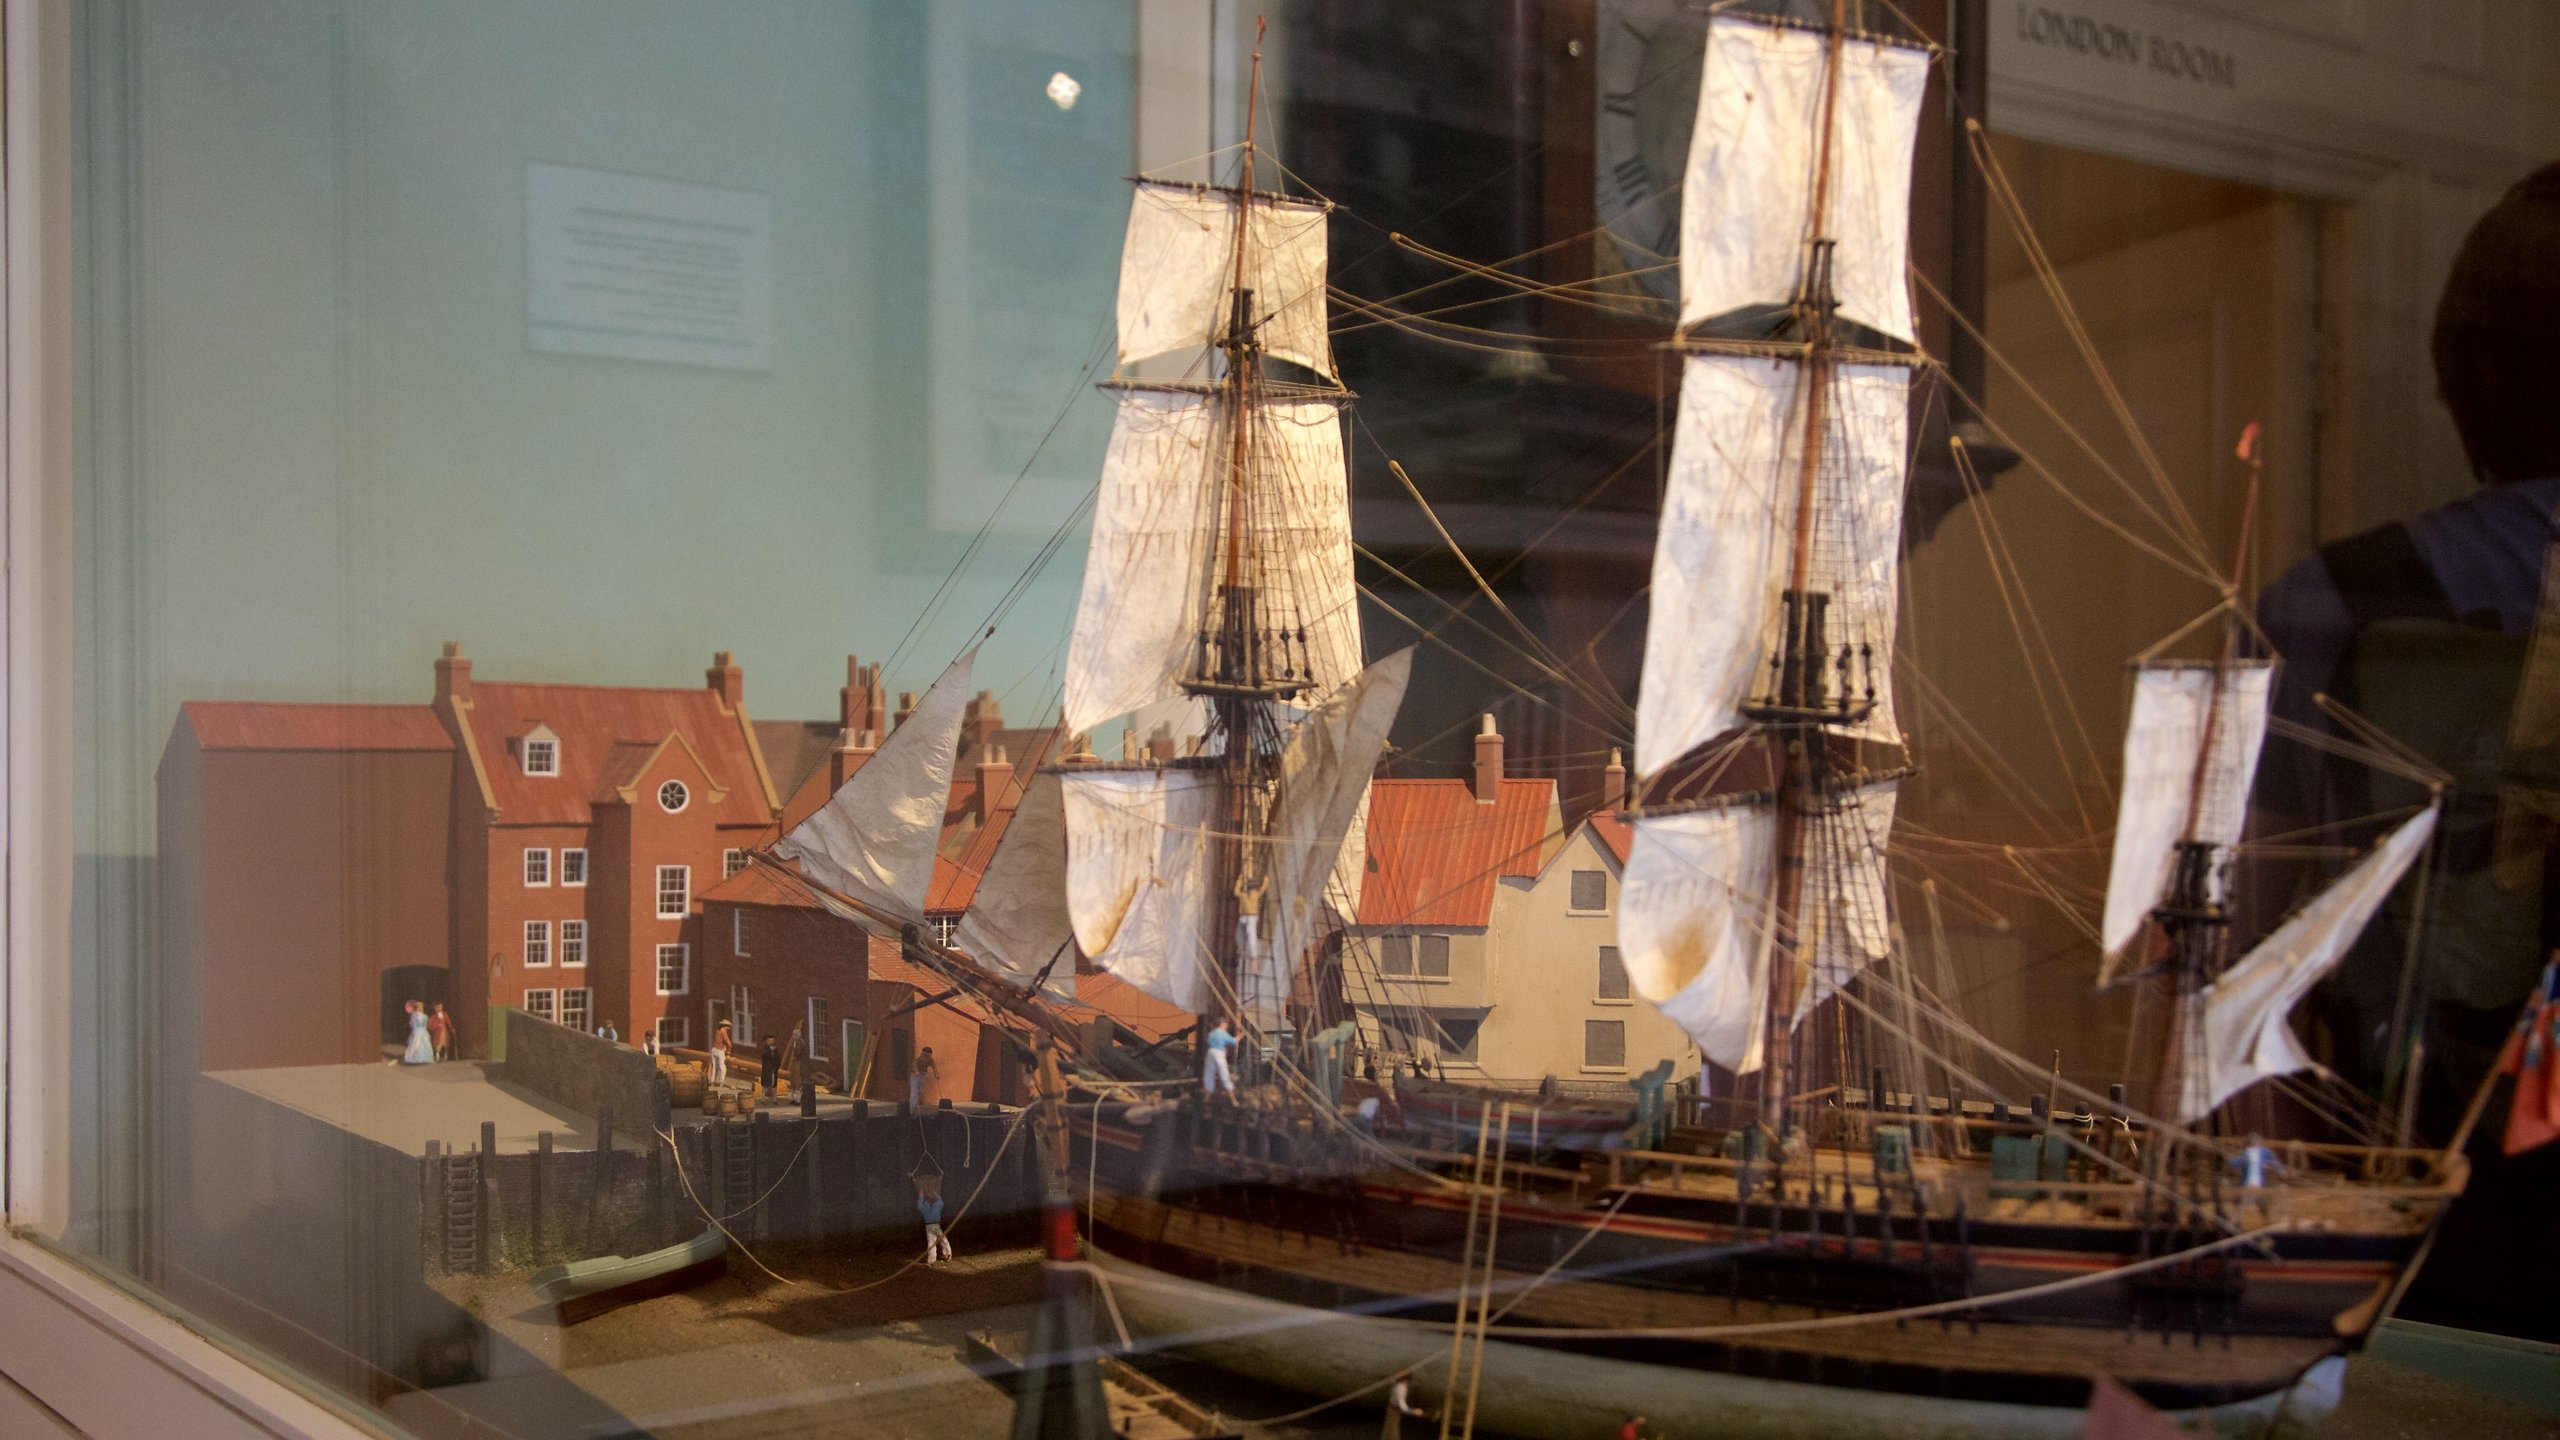 Captain Cook Memorial Museum, Whitby, England, United Kingdom